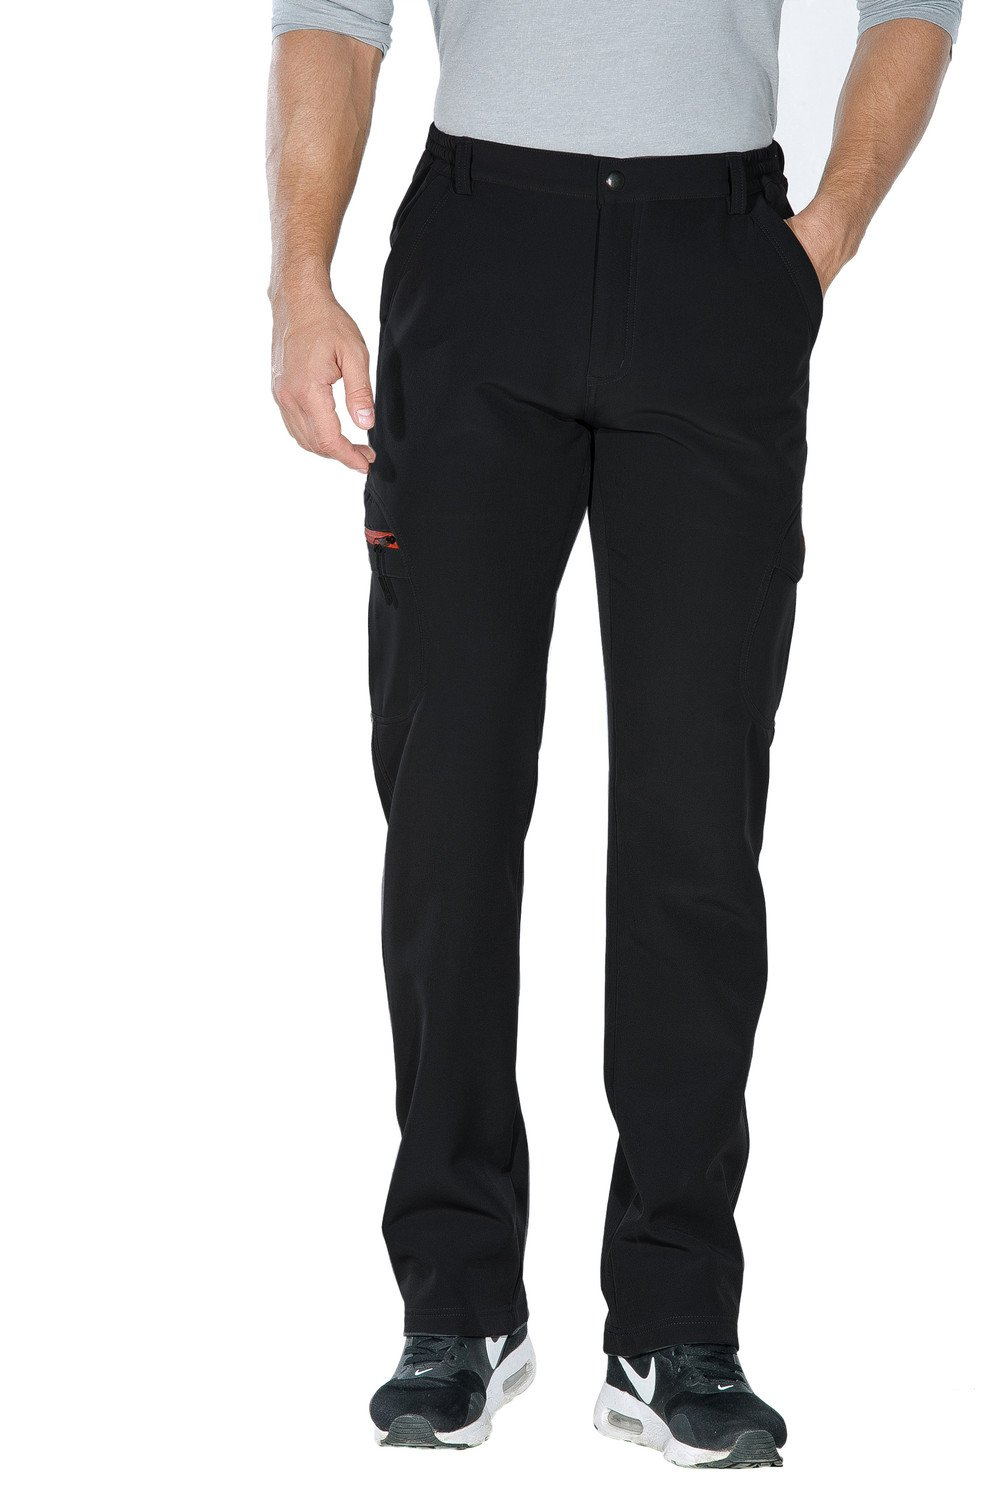 193983c58c7 Nonwe Men s Outdoor Windproof Hiking Softshell Snow Pants product image